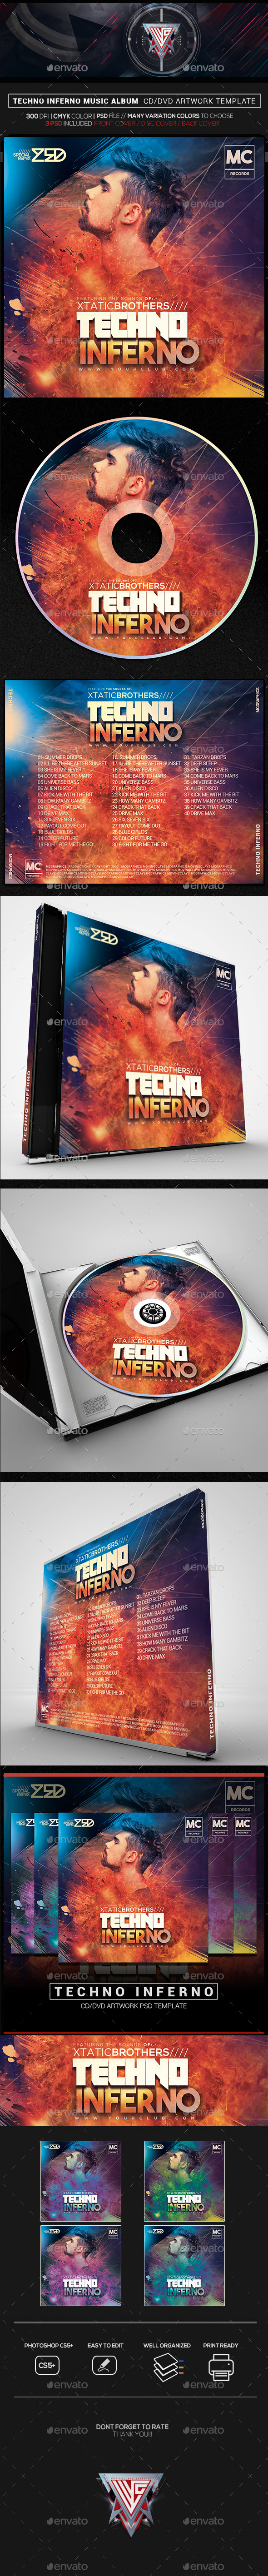 Techno Inferno Music Album CD/DVD Template - CD & DVD Artwork Print Templates